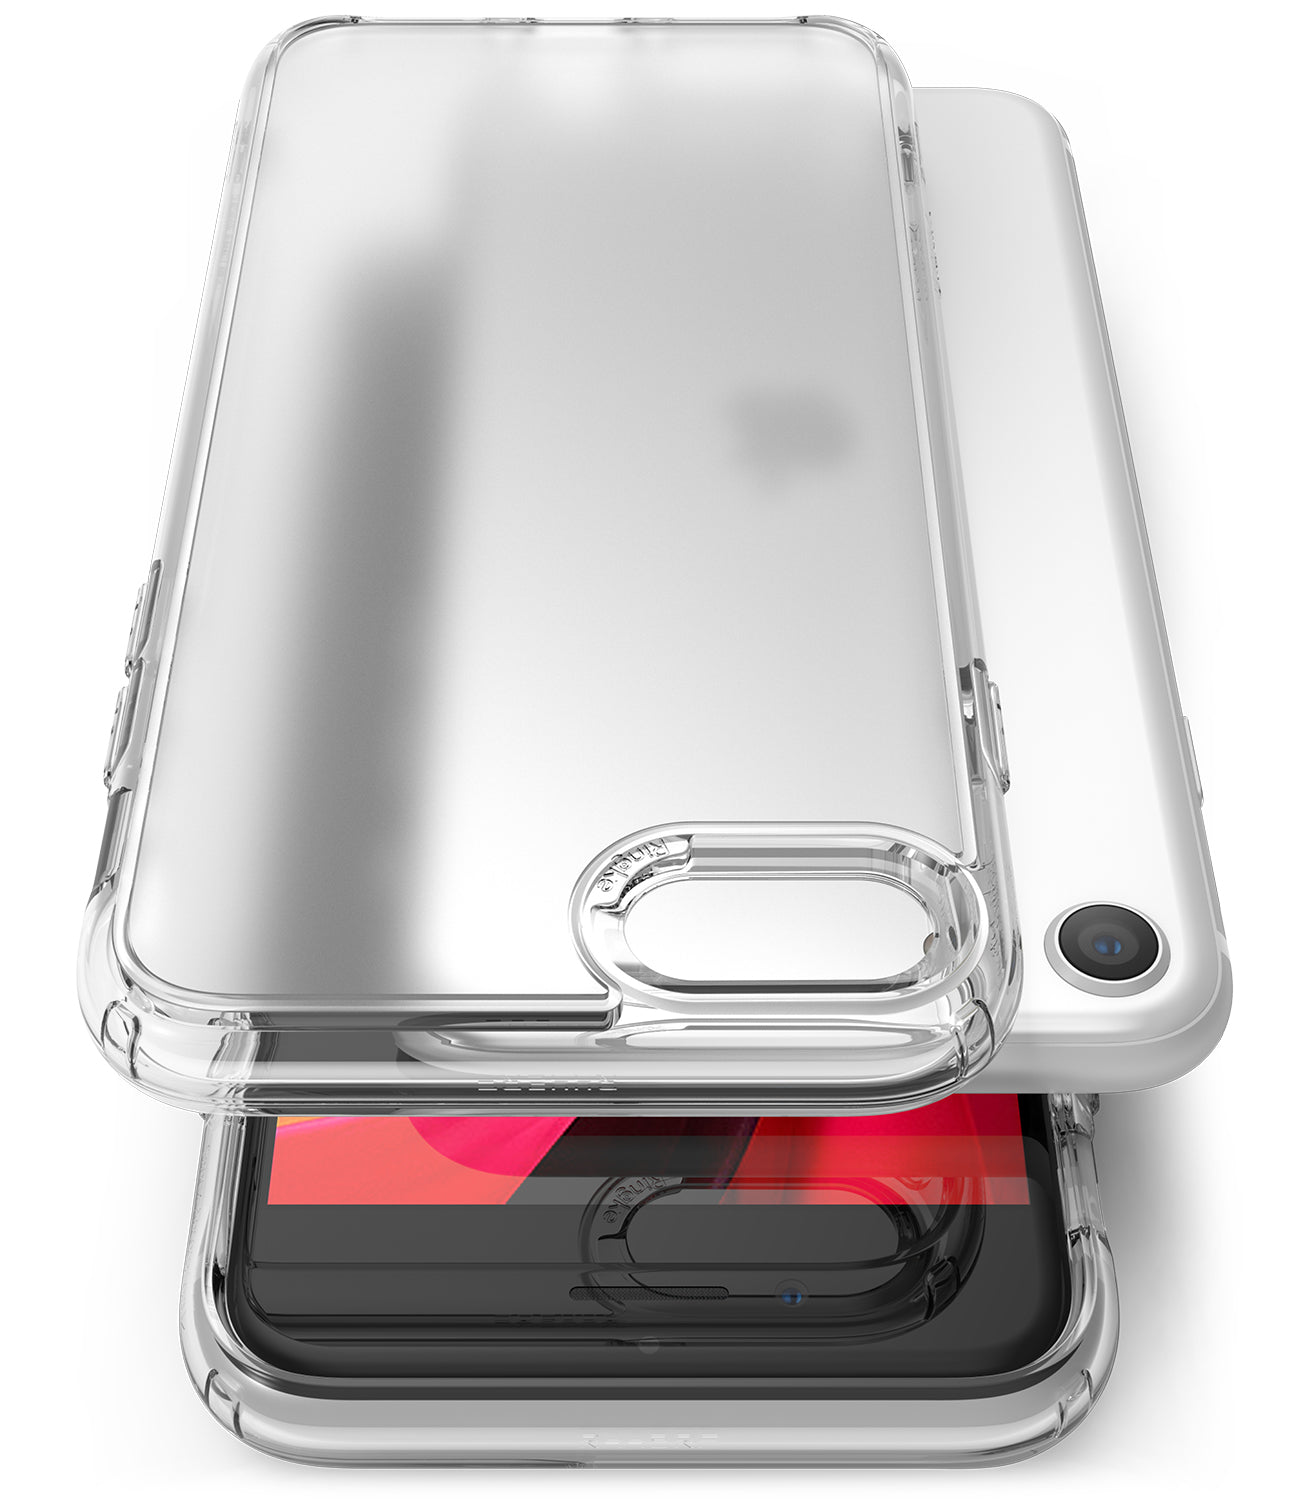 ringke fusion no smudge mattte clear case for apple iphone se 2020 / iphone 8